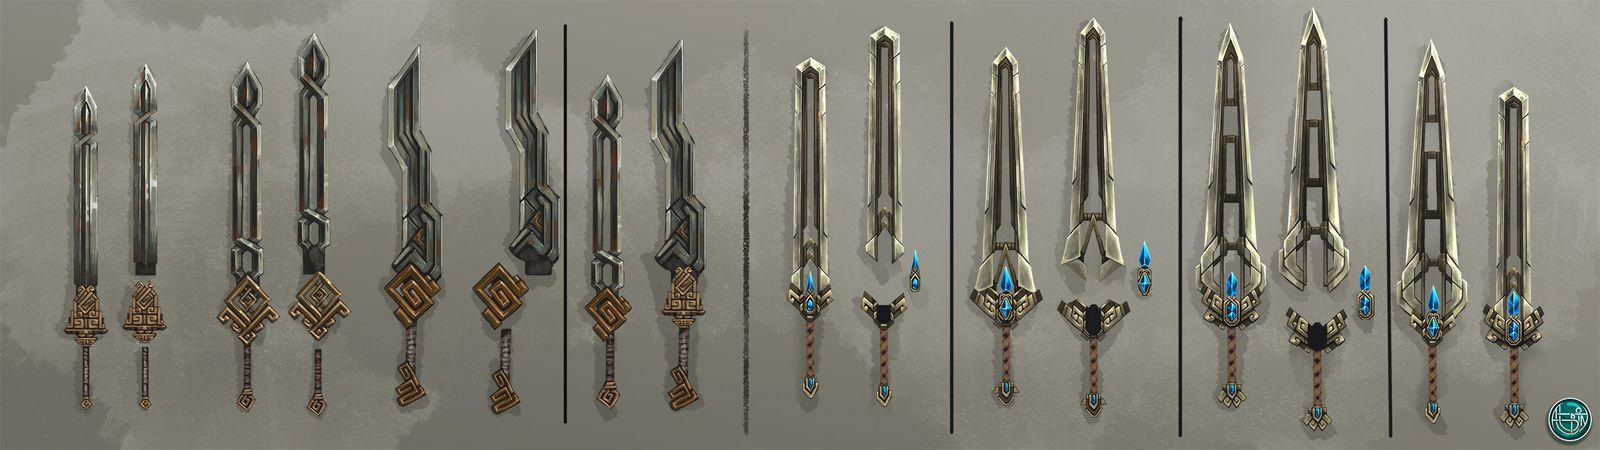 Swords concepts